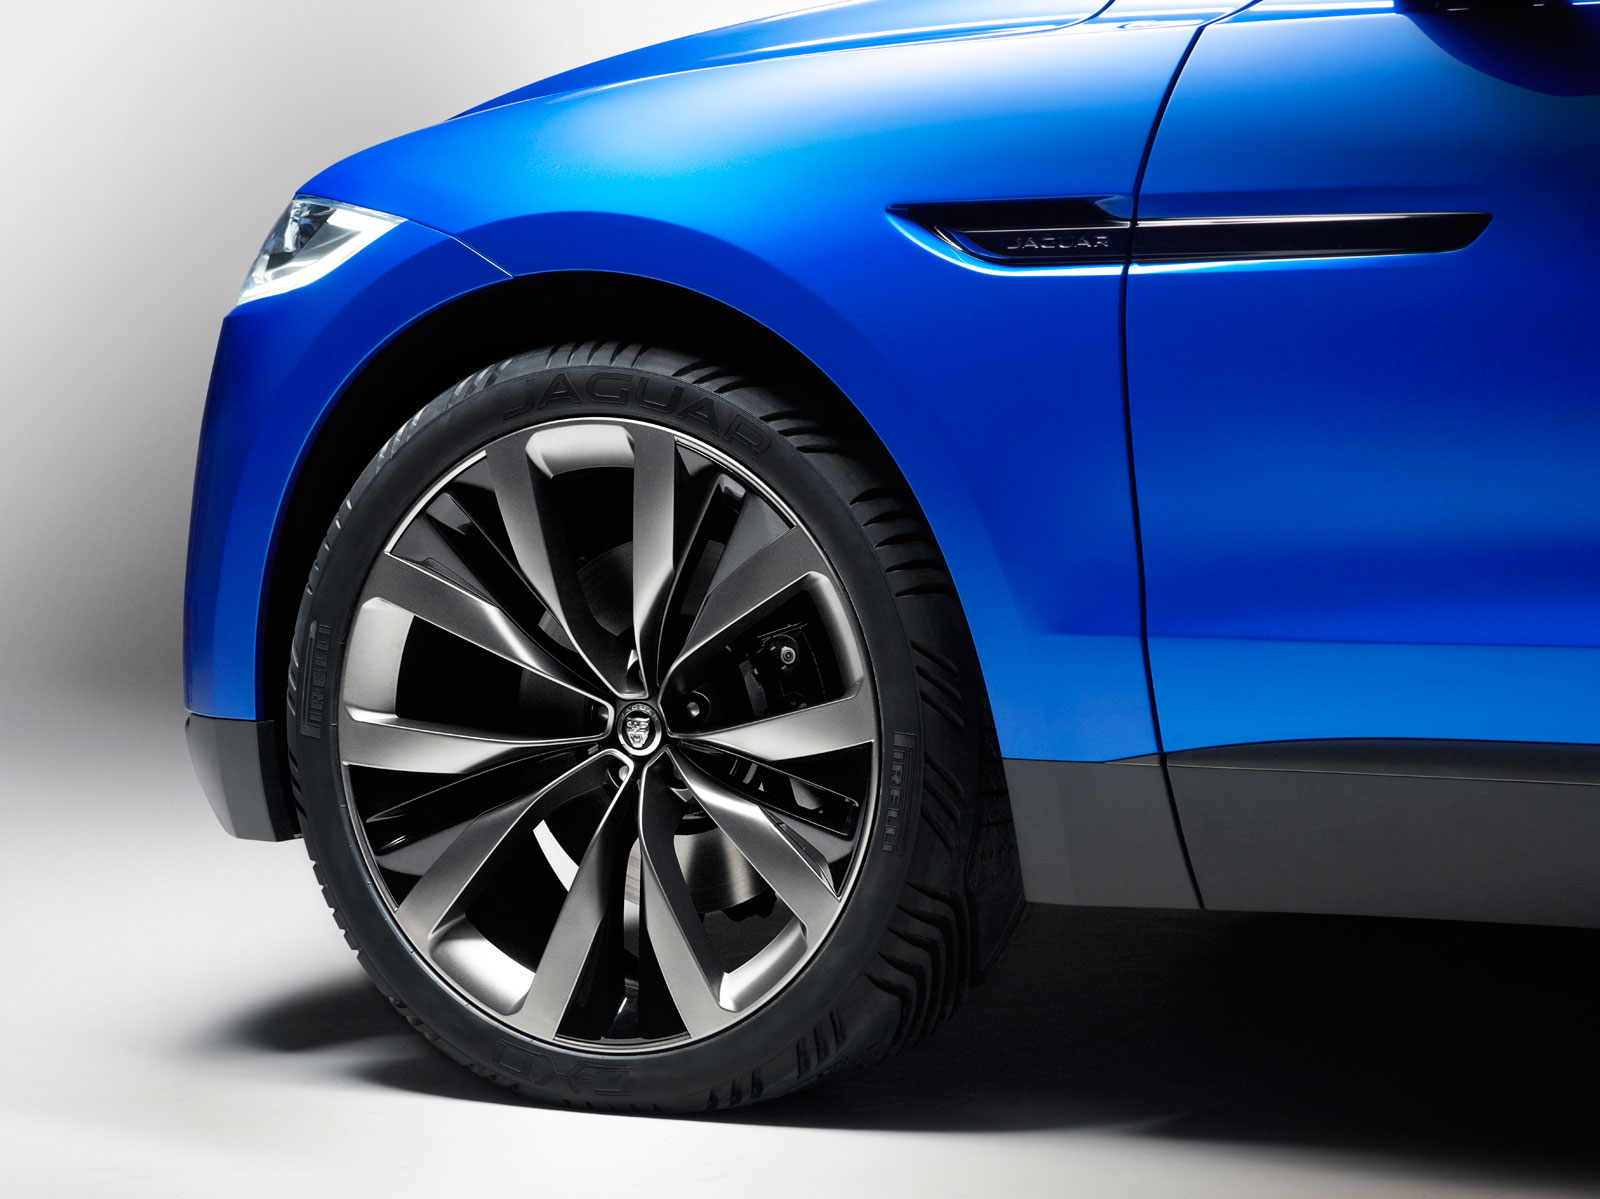 Jaguar C-X17 Concept - Wheel